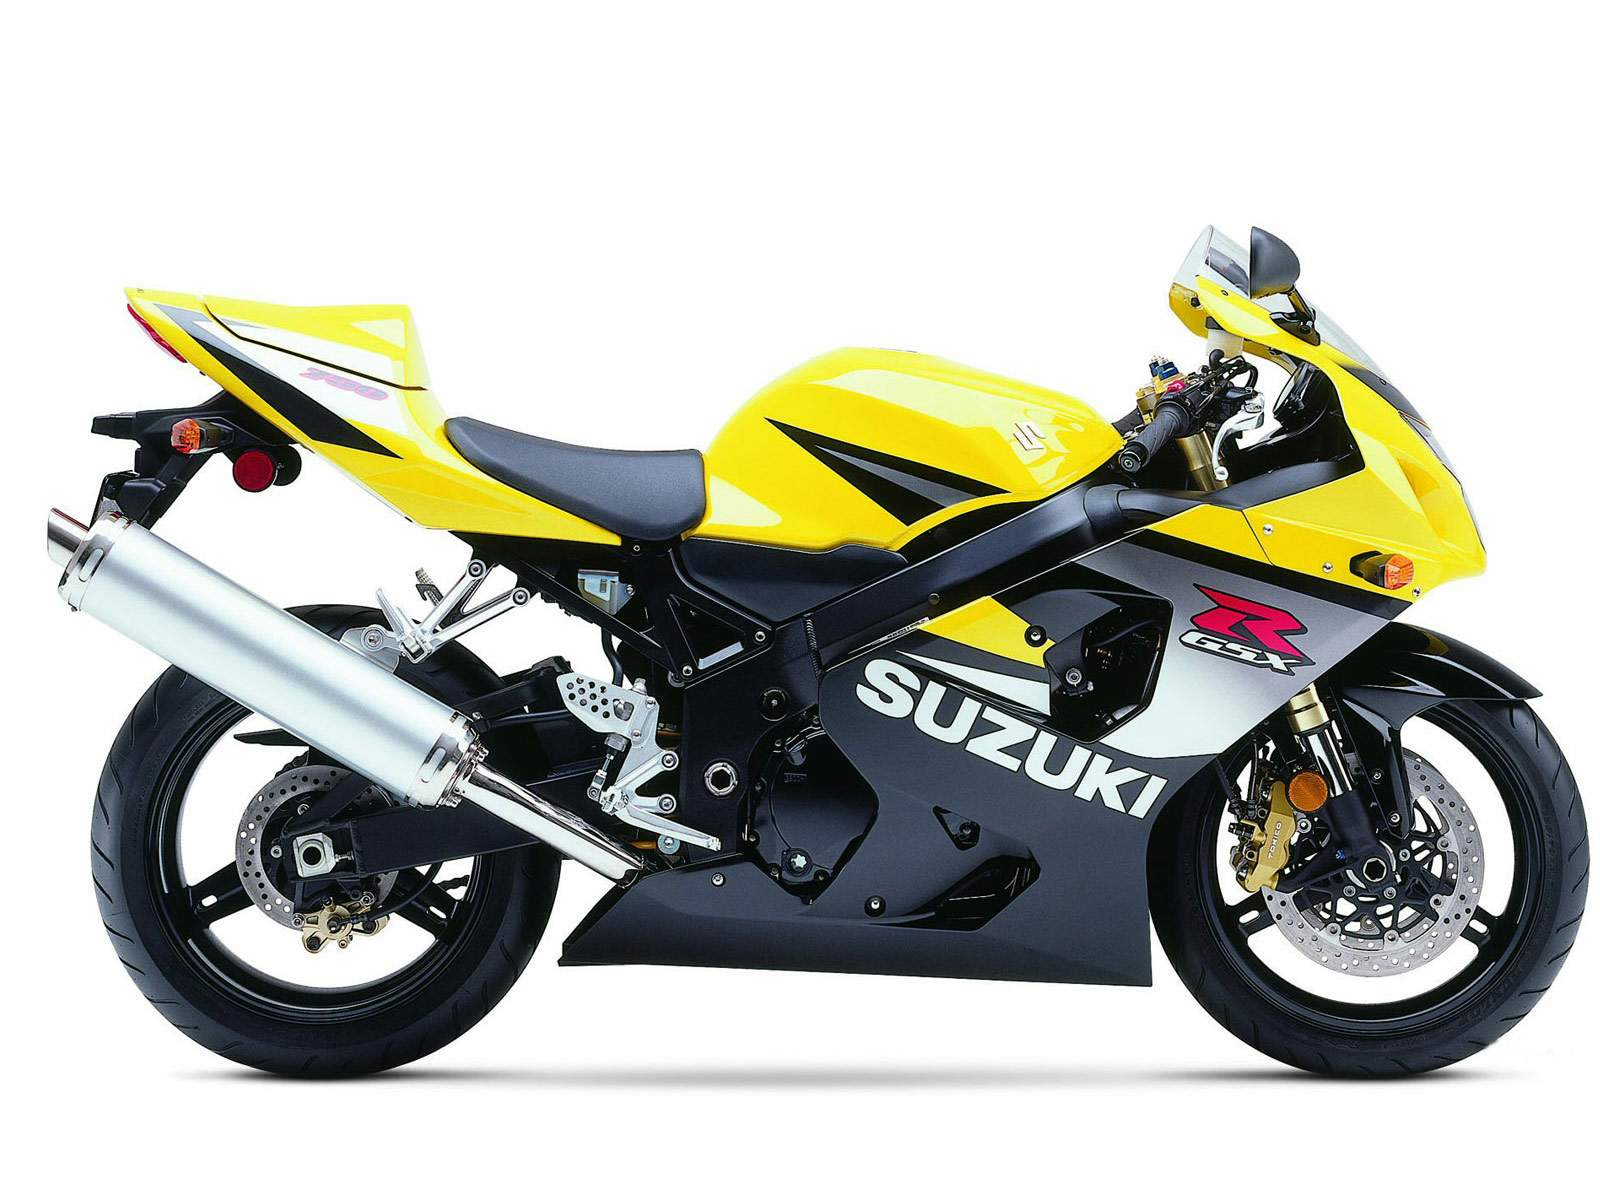 Suzuki Gsx R 750 Fzr 600 Wiring Diagram An Error Occurred